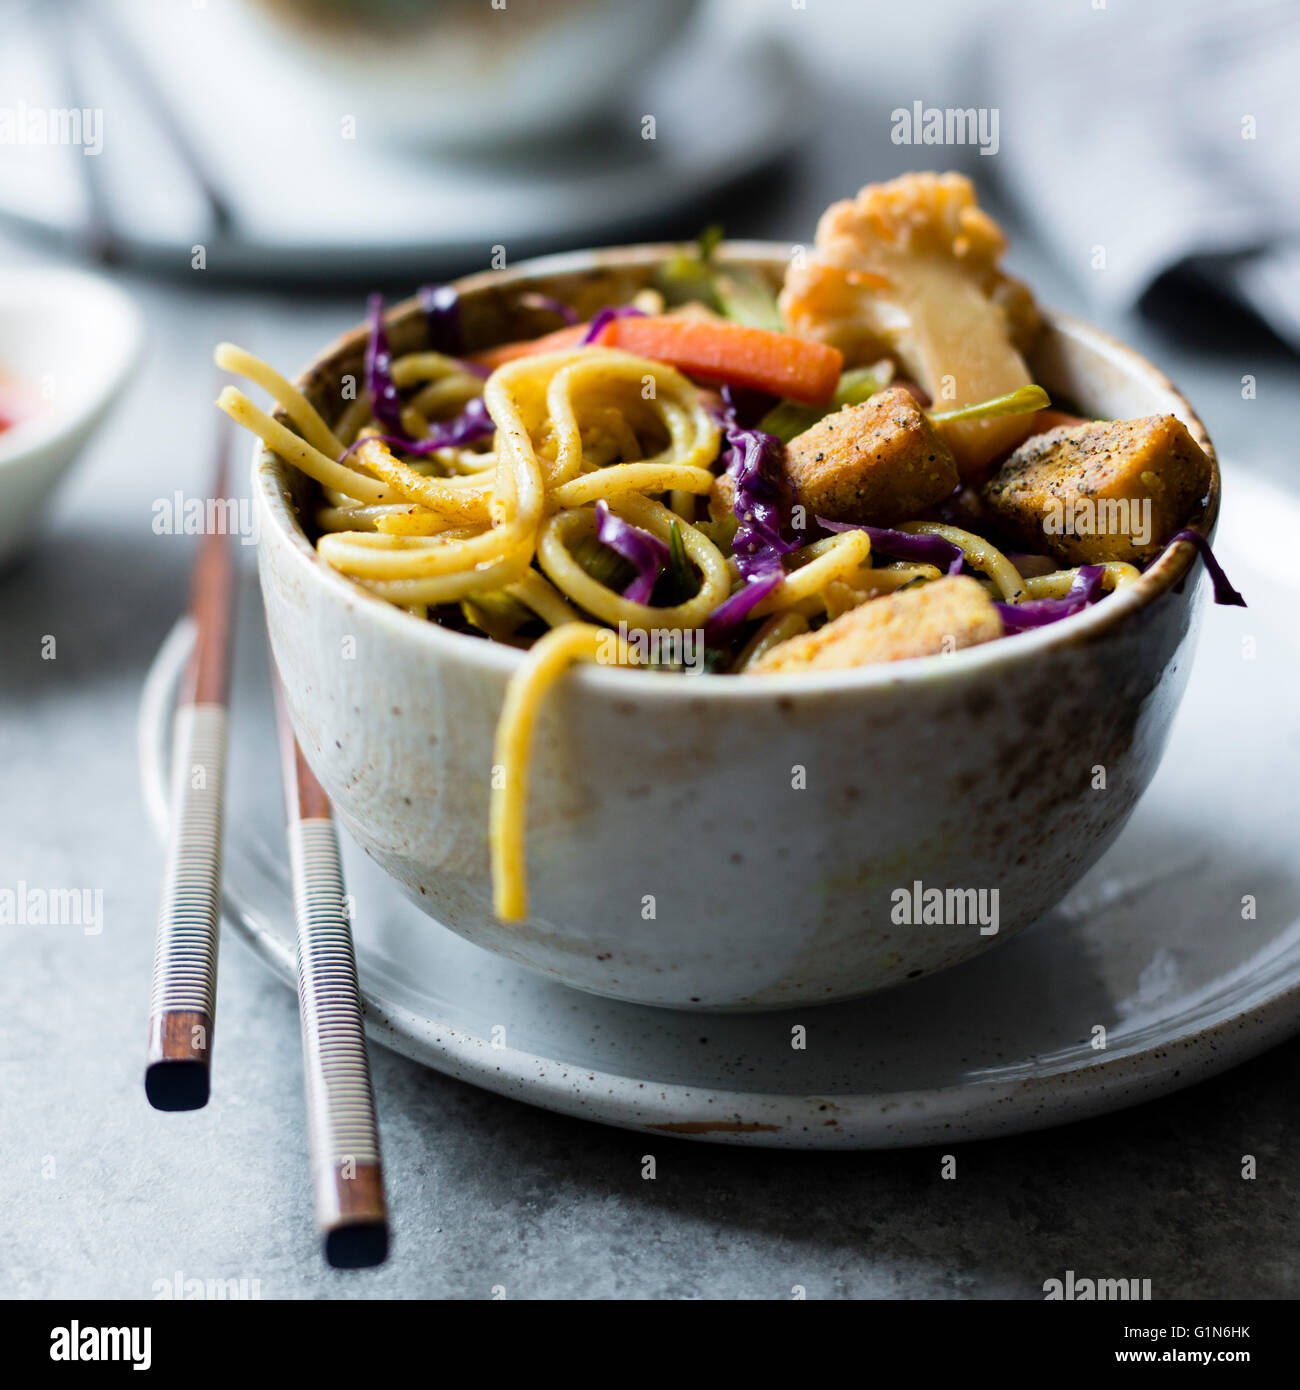 Curried noodles with crispy tofu & winter vegetables, gluten-free and vegan. Stock Photo